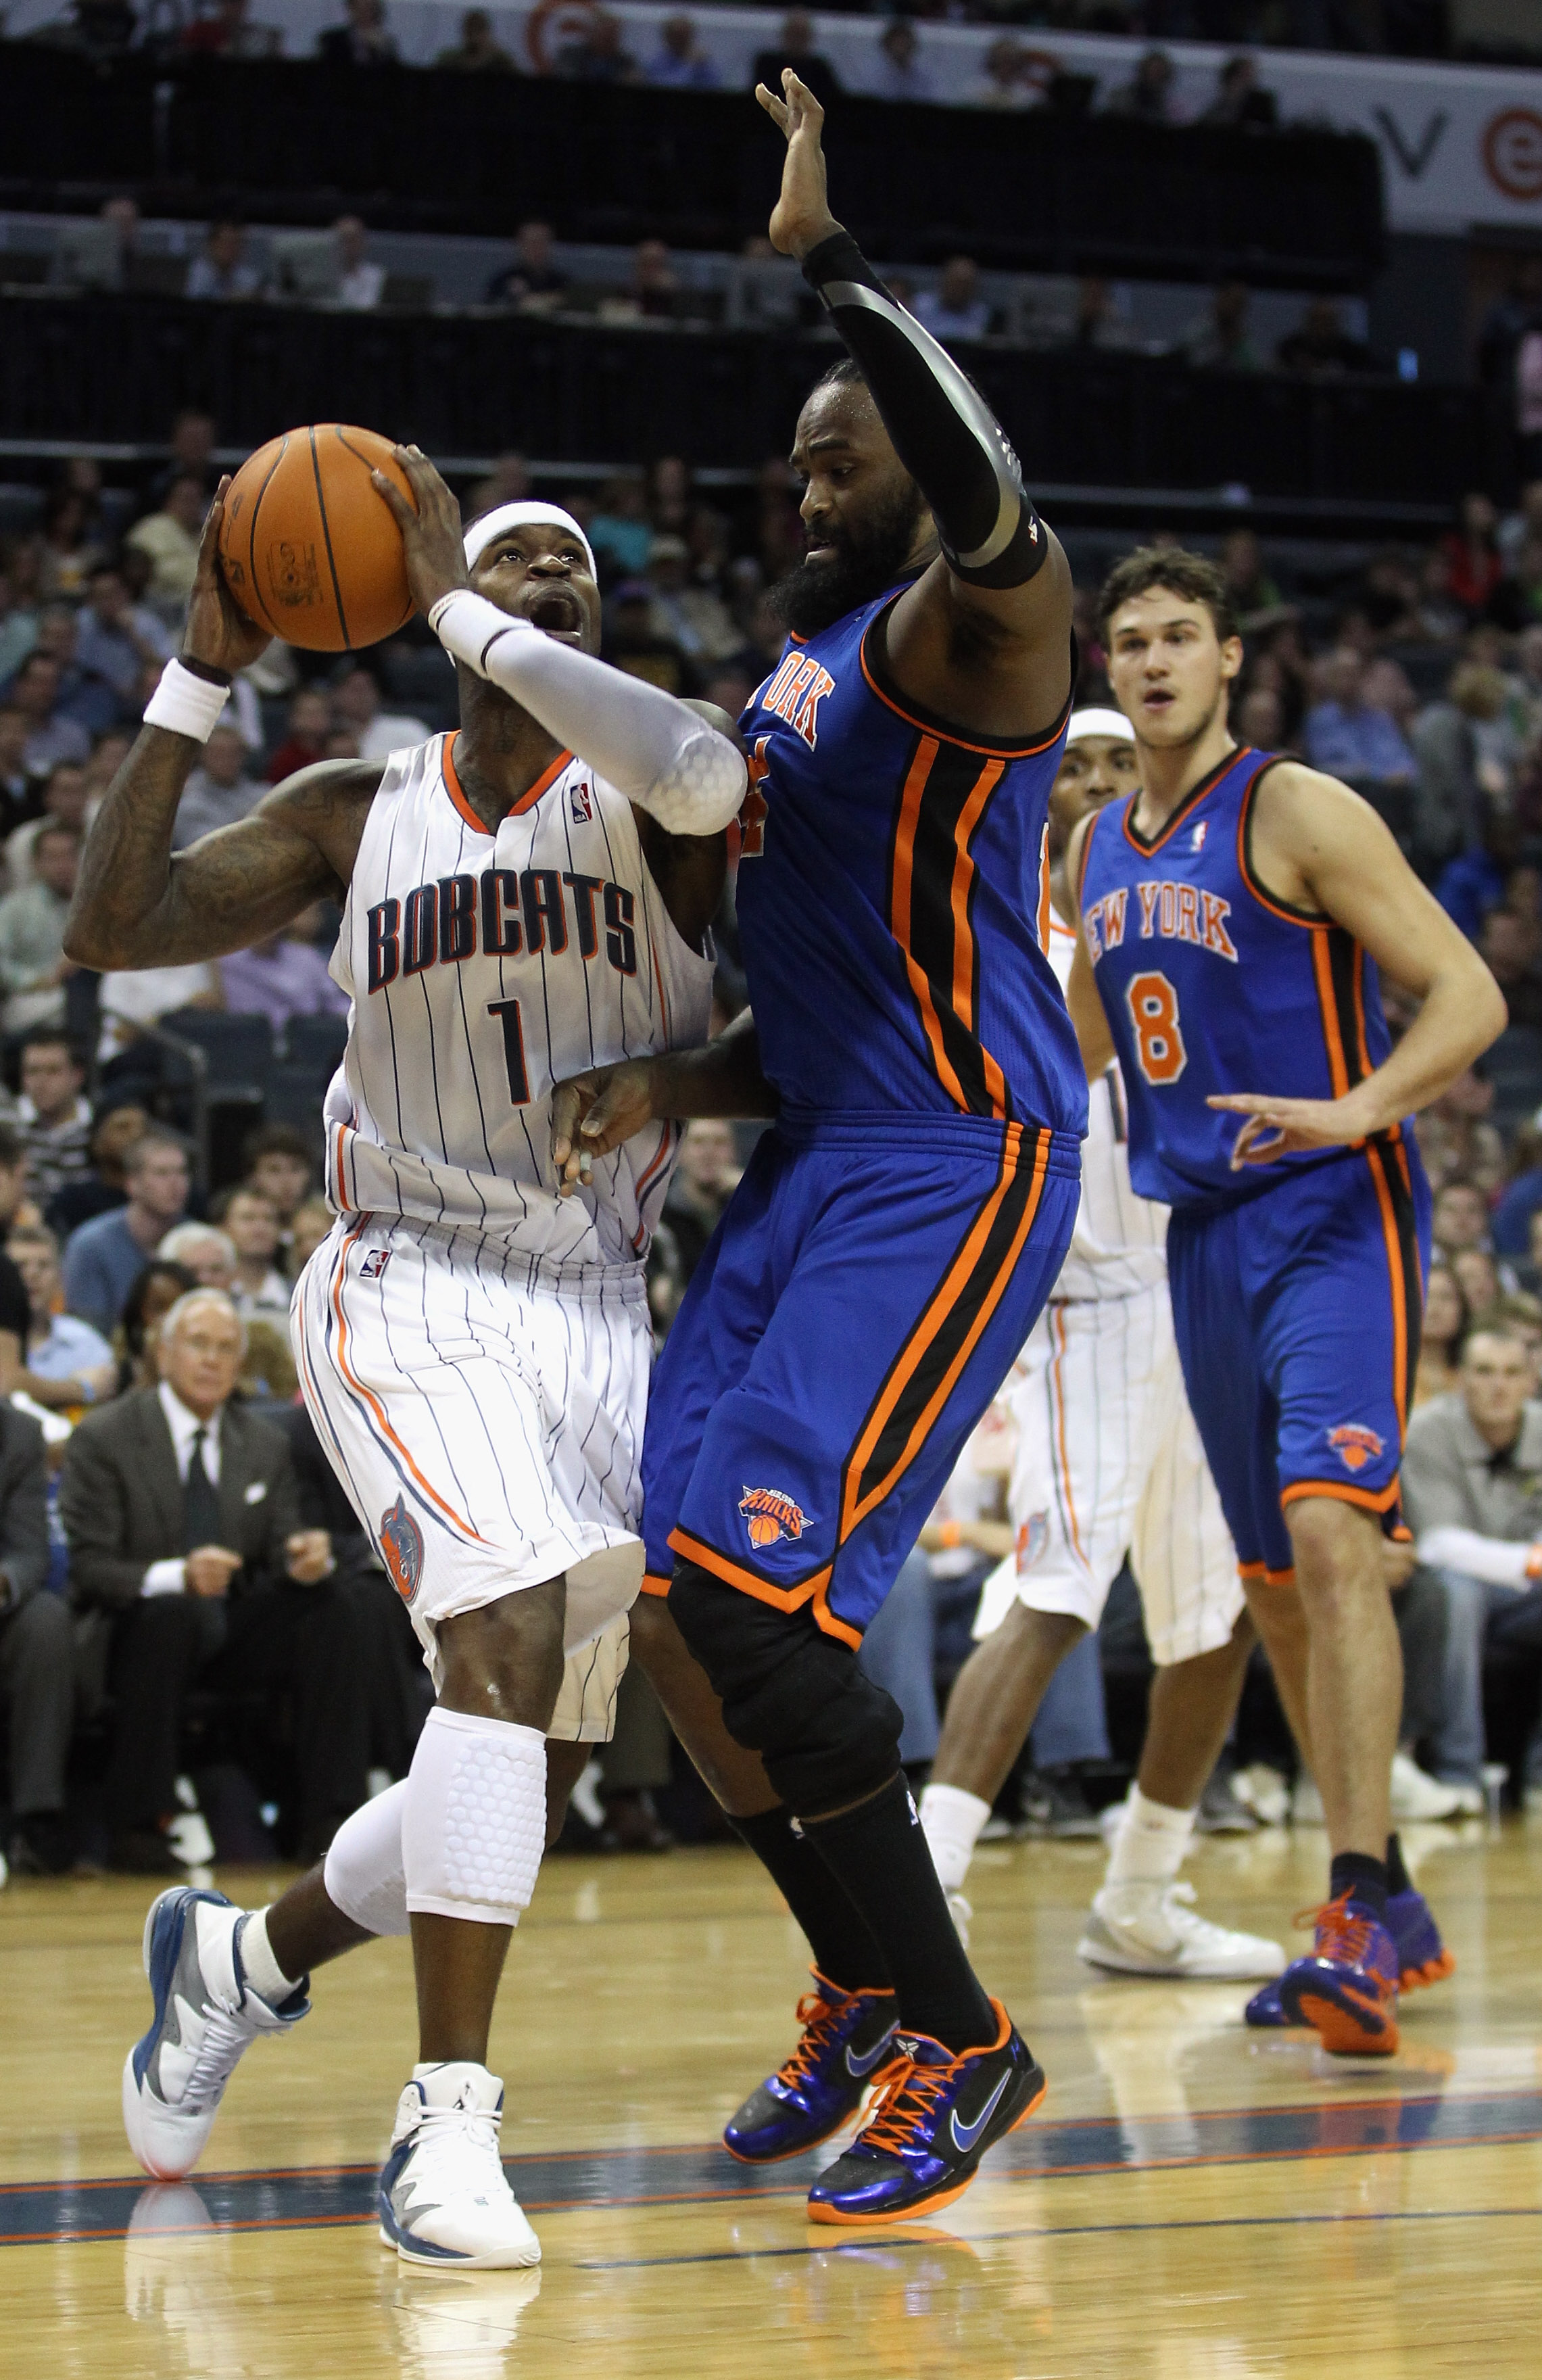 CHARLOTTE, NC - NOVEMBER 24:  Ronny Turiaf #14 of the New York Knicks tries to stop Stephen Jackson #1 of the Charlotte Bobcats during their game at Time Warner Cable Arena on November 24, 2010 in Charlotte, North Carolina.  NOTE TO USER: User expressly a